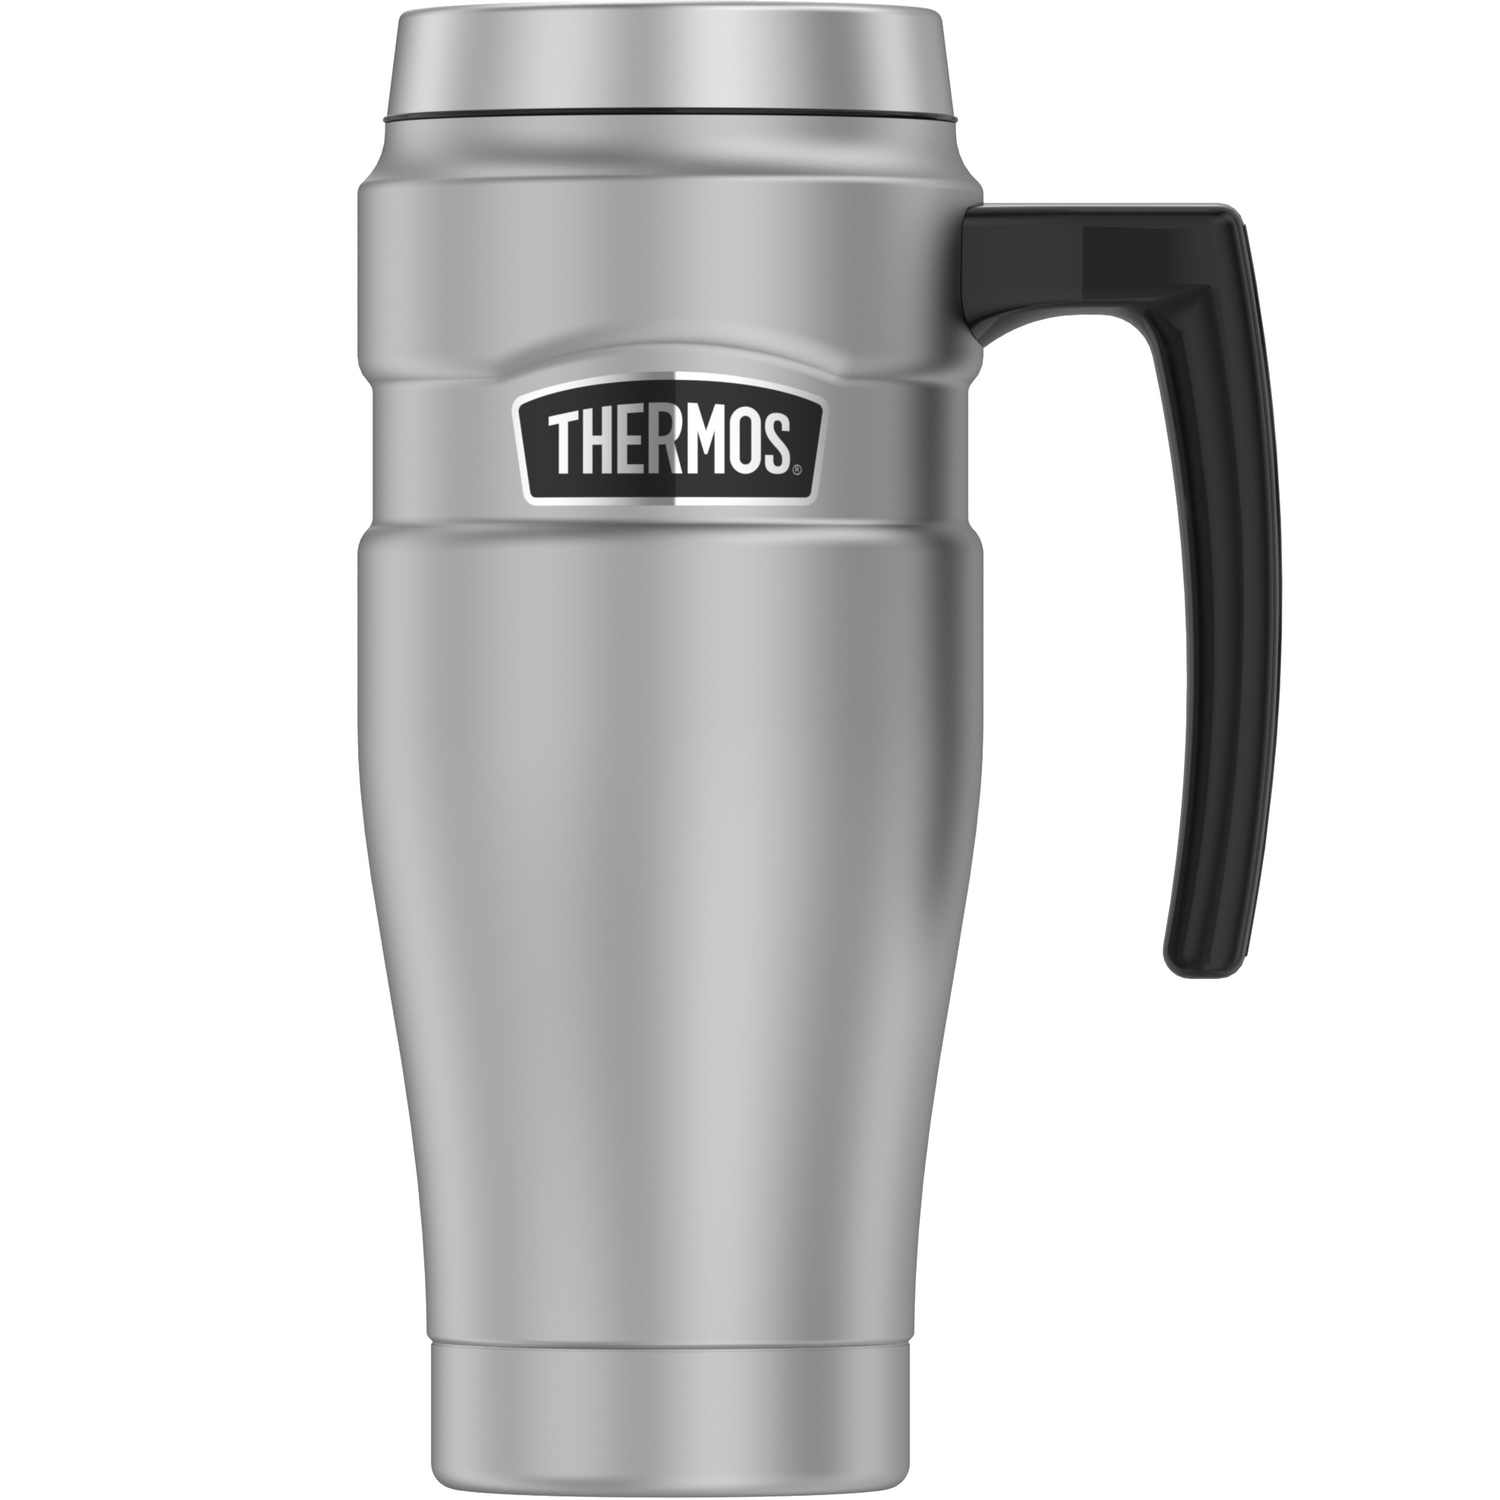 Thermos  Silver/Black  Stainless Steel  Travel Tumbler  BPA Free 14 oz. Travel Tumbler